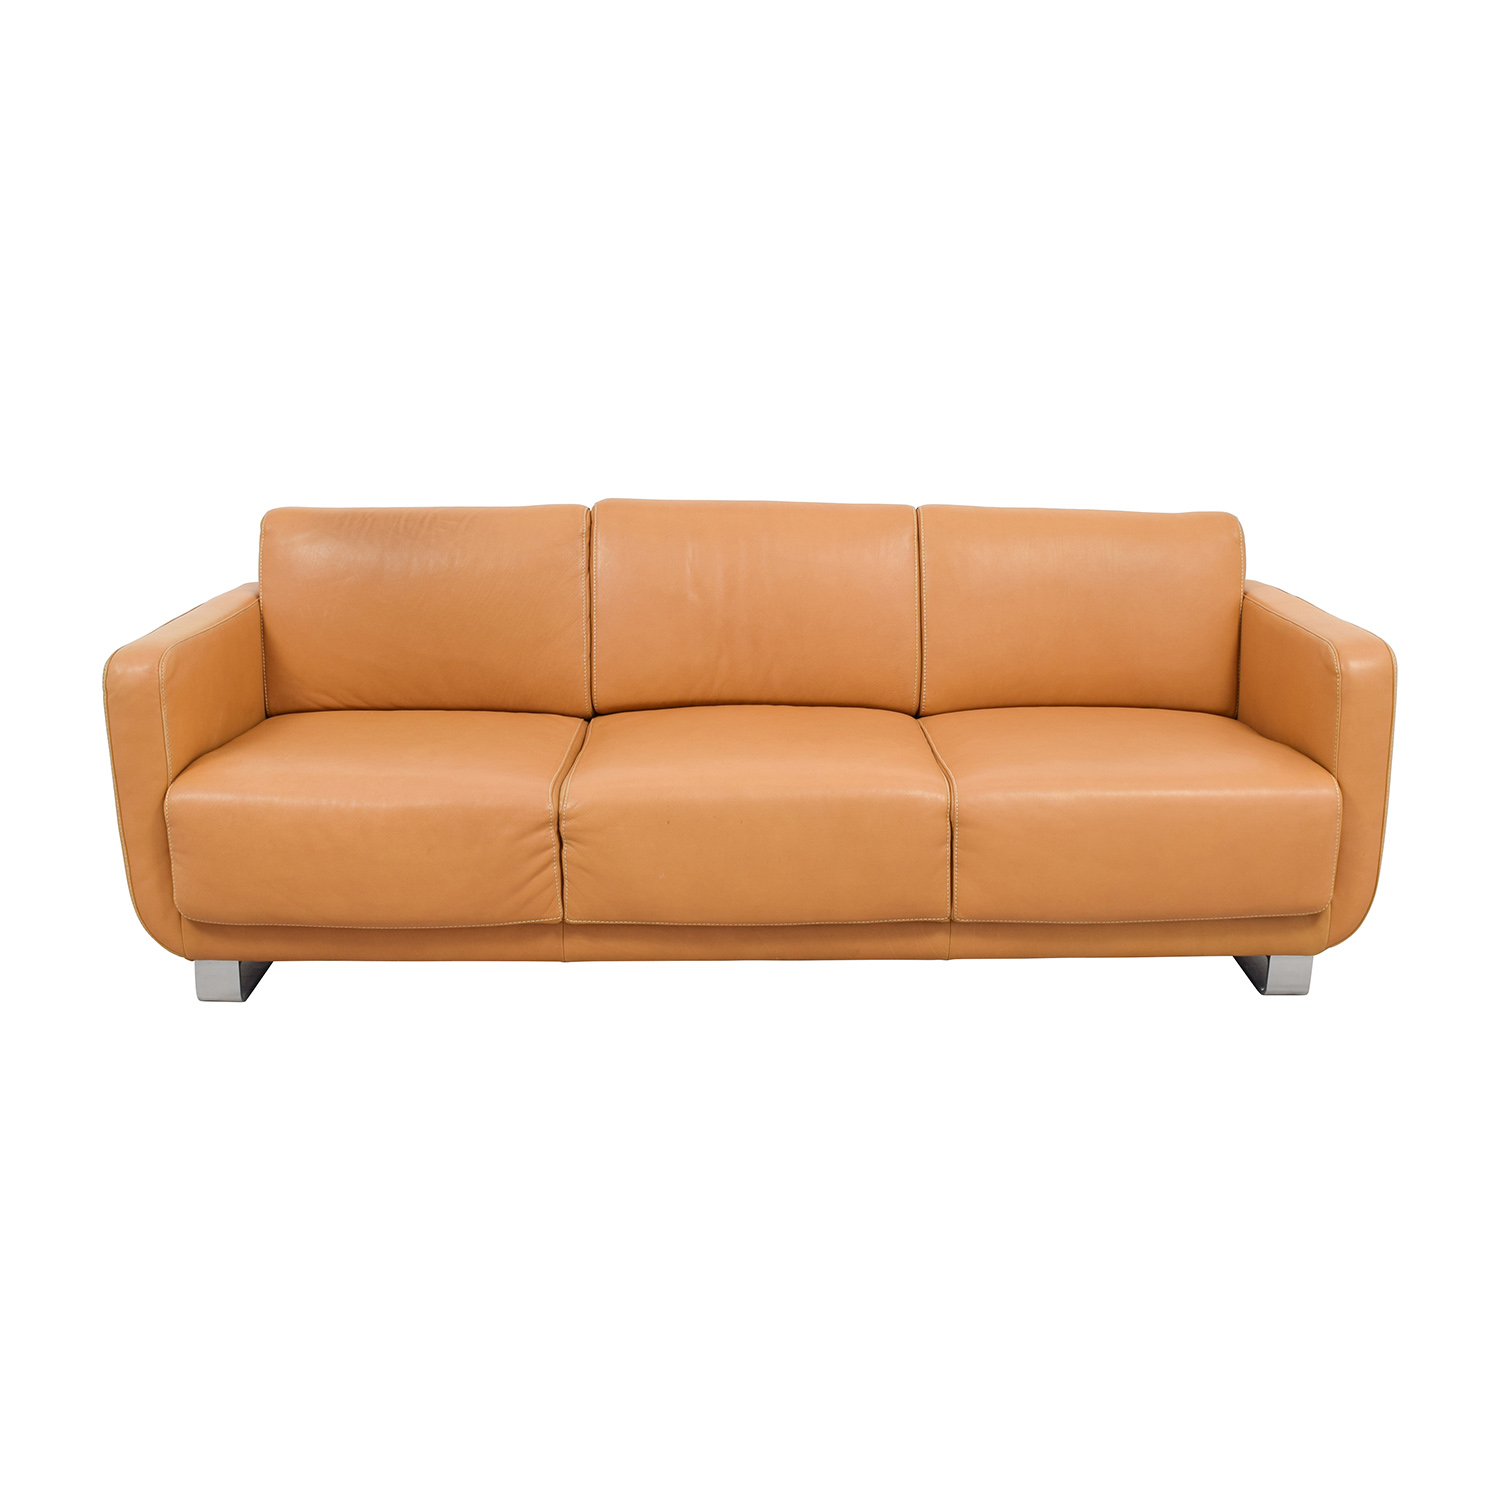 74 Off W Schillig W Schillig Light Brown Leather Sofa